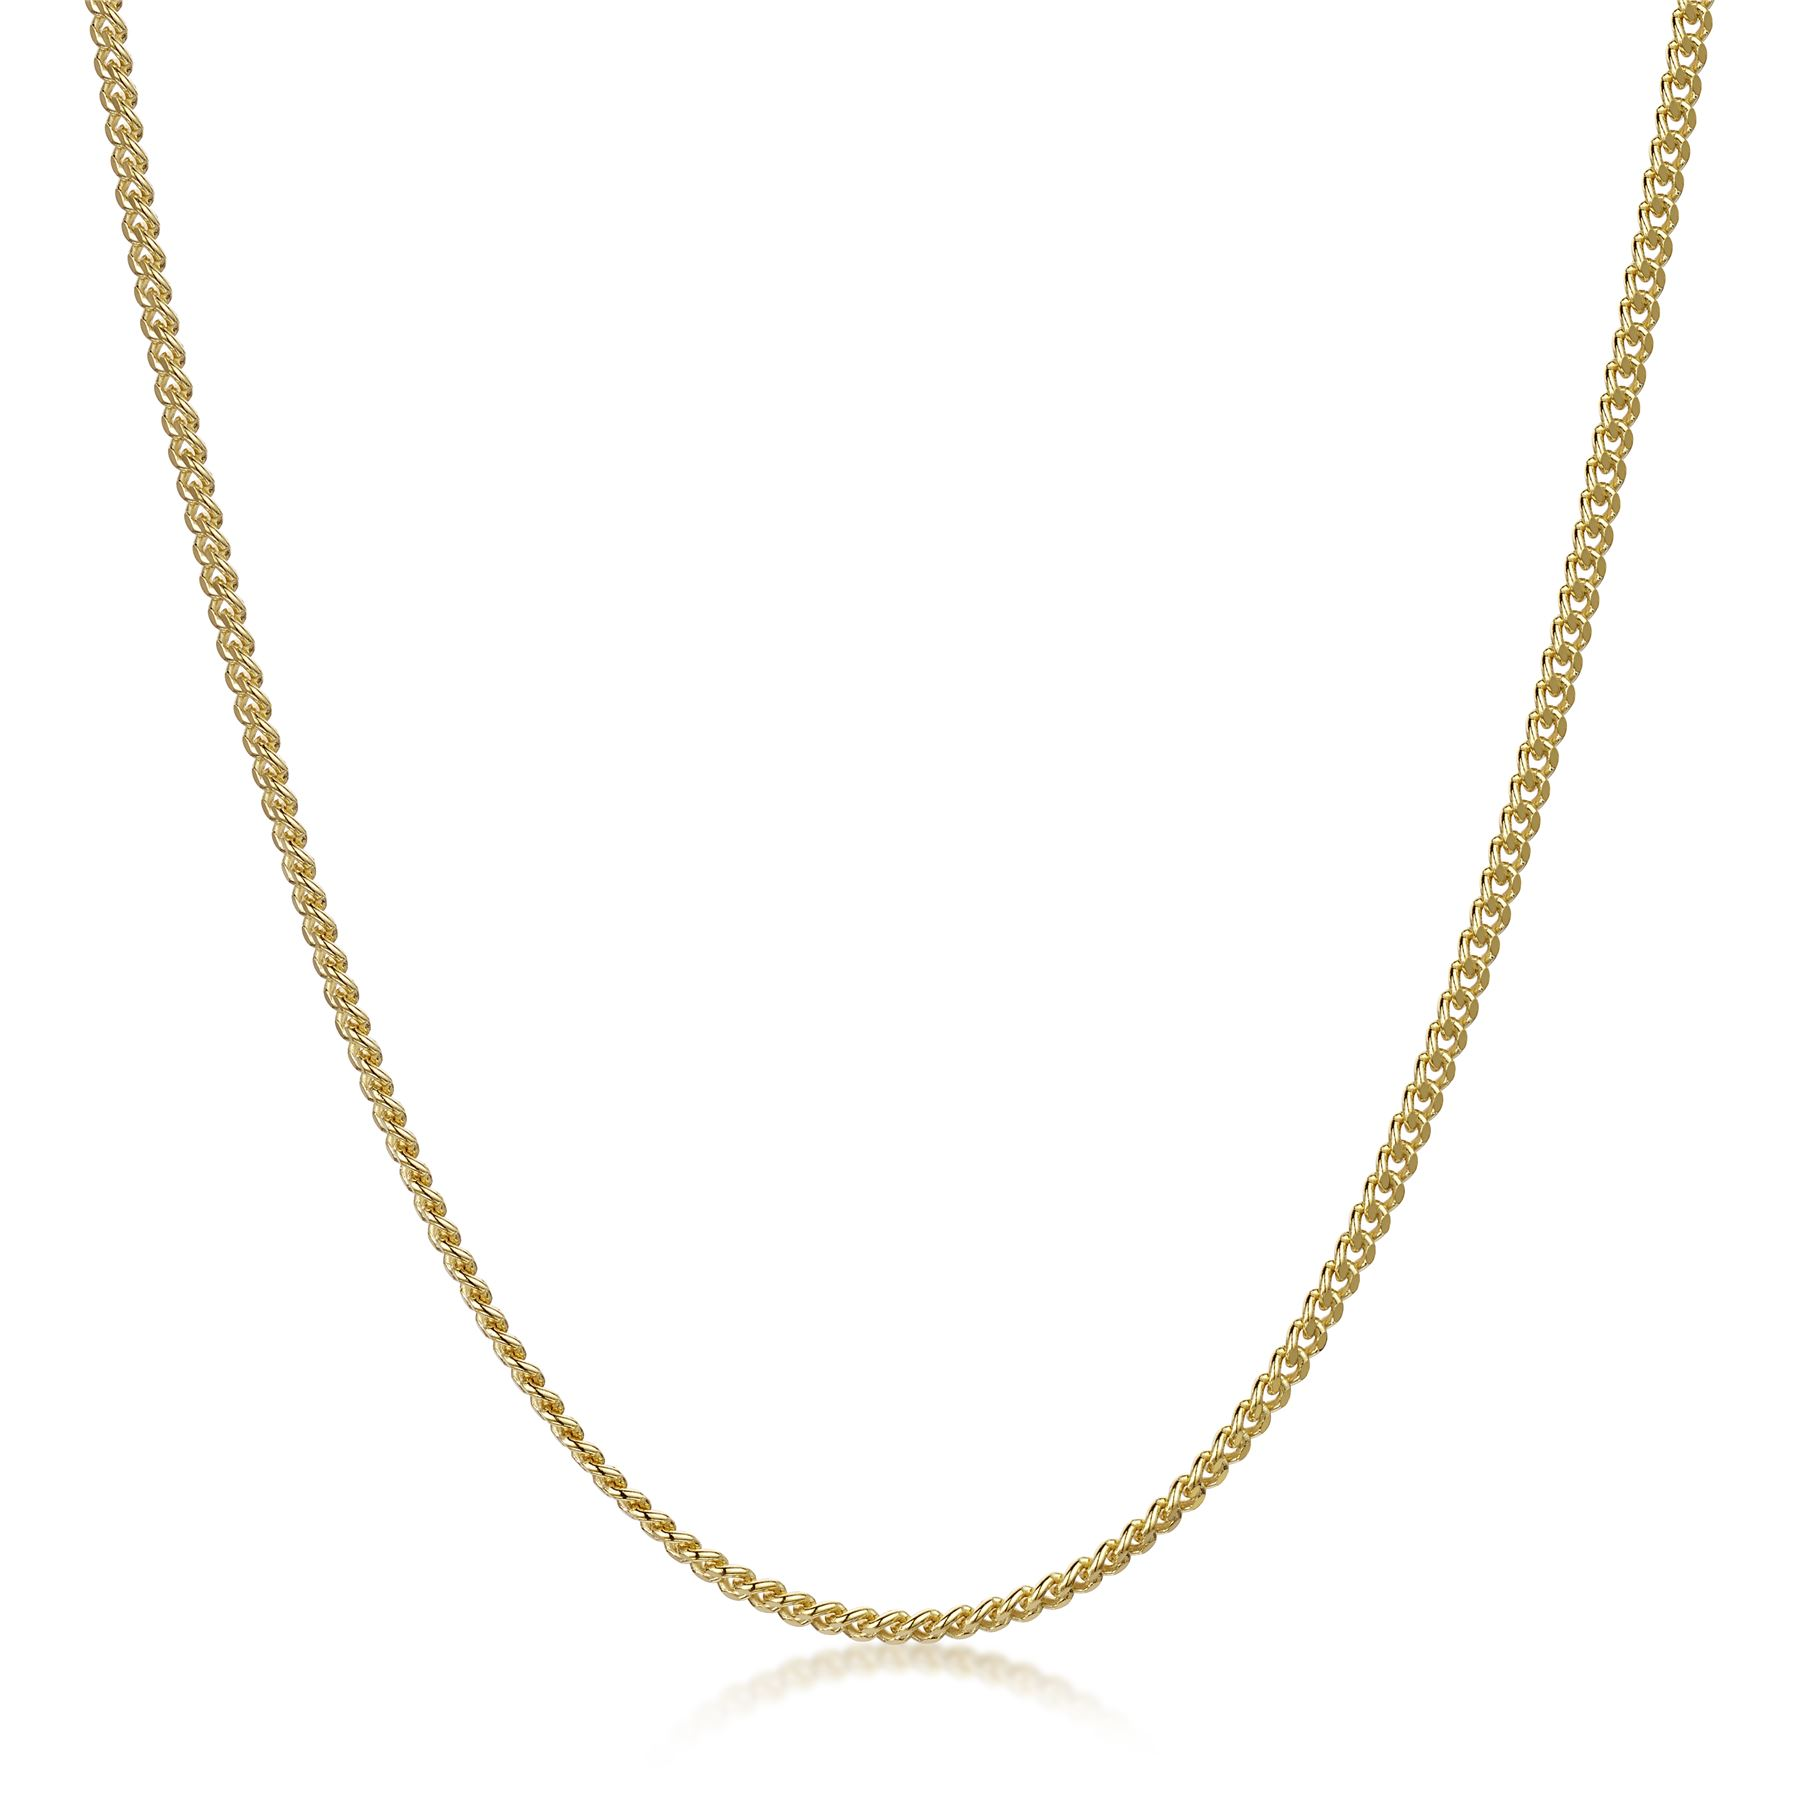 Amberta-Genuine-Gold-Plated-on-Real-925-Sterling-Silver-Necklace-Chain-Italy miniatura 31